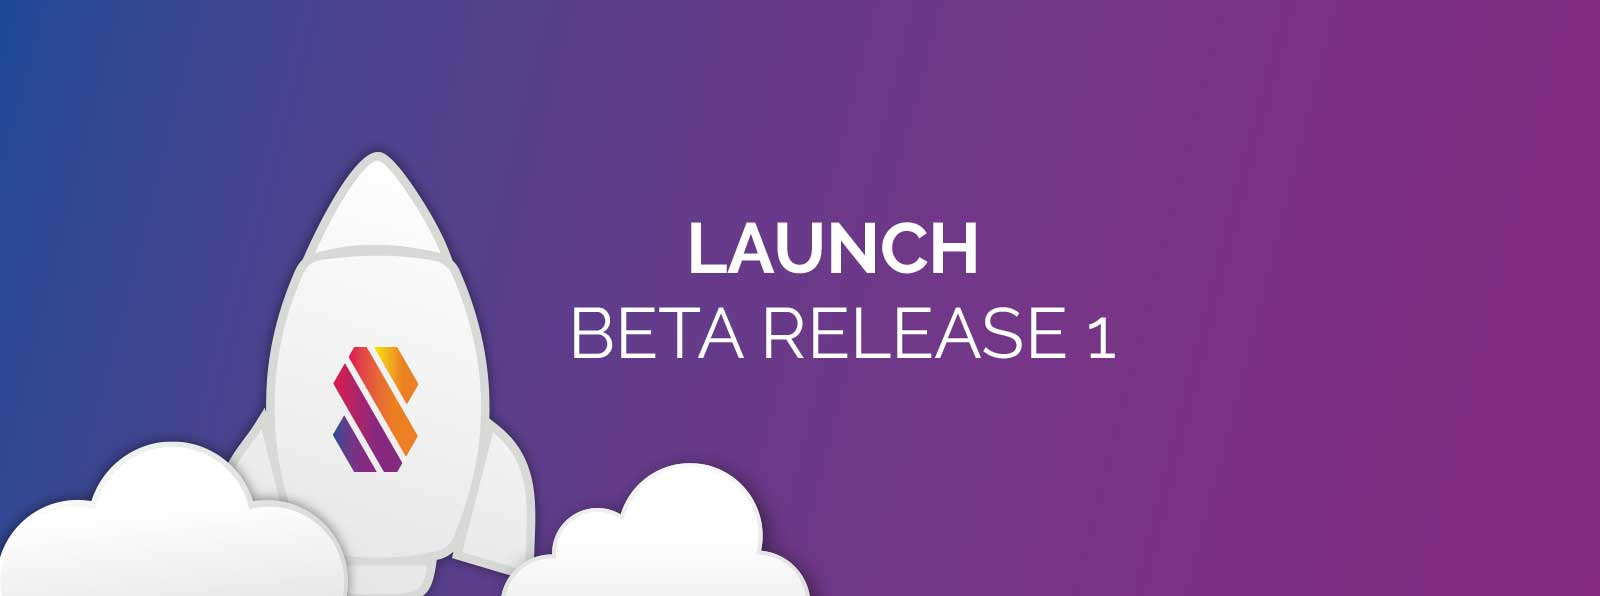 Launch Beta Release